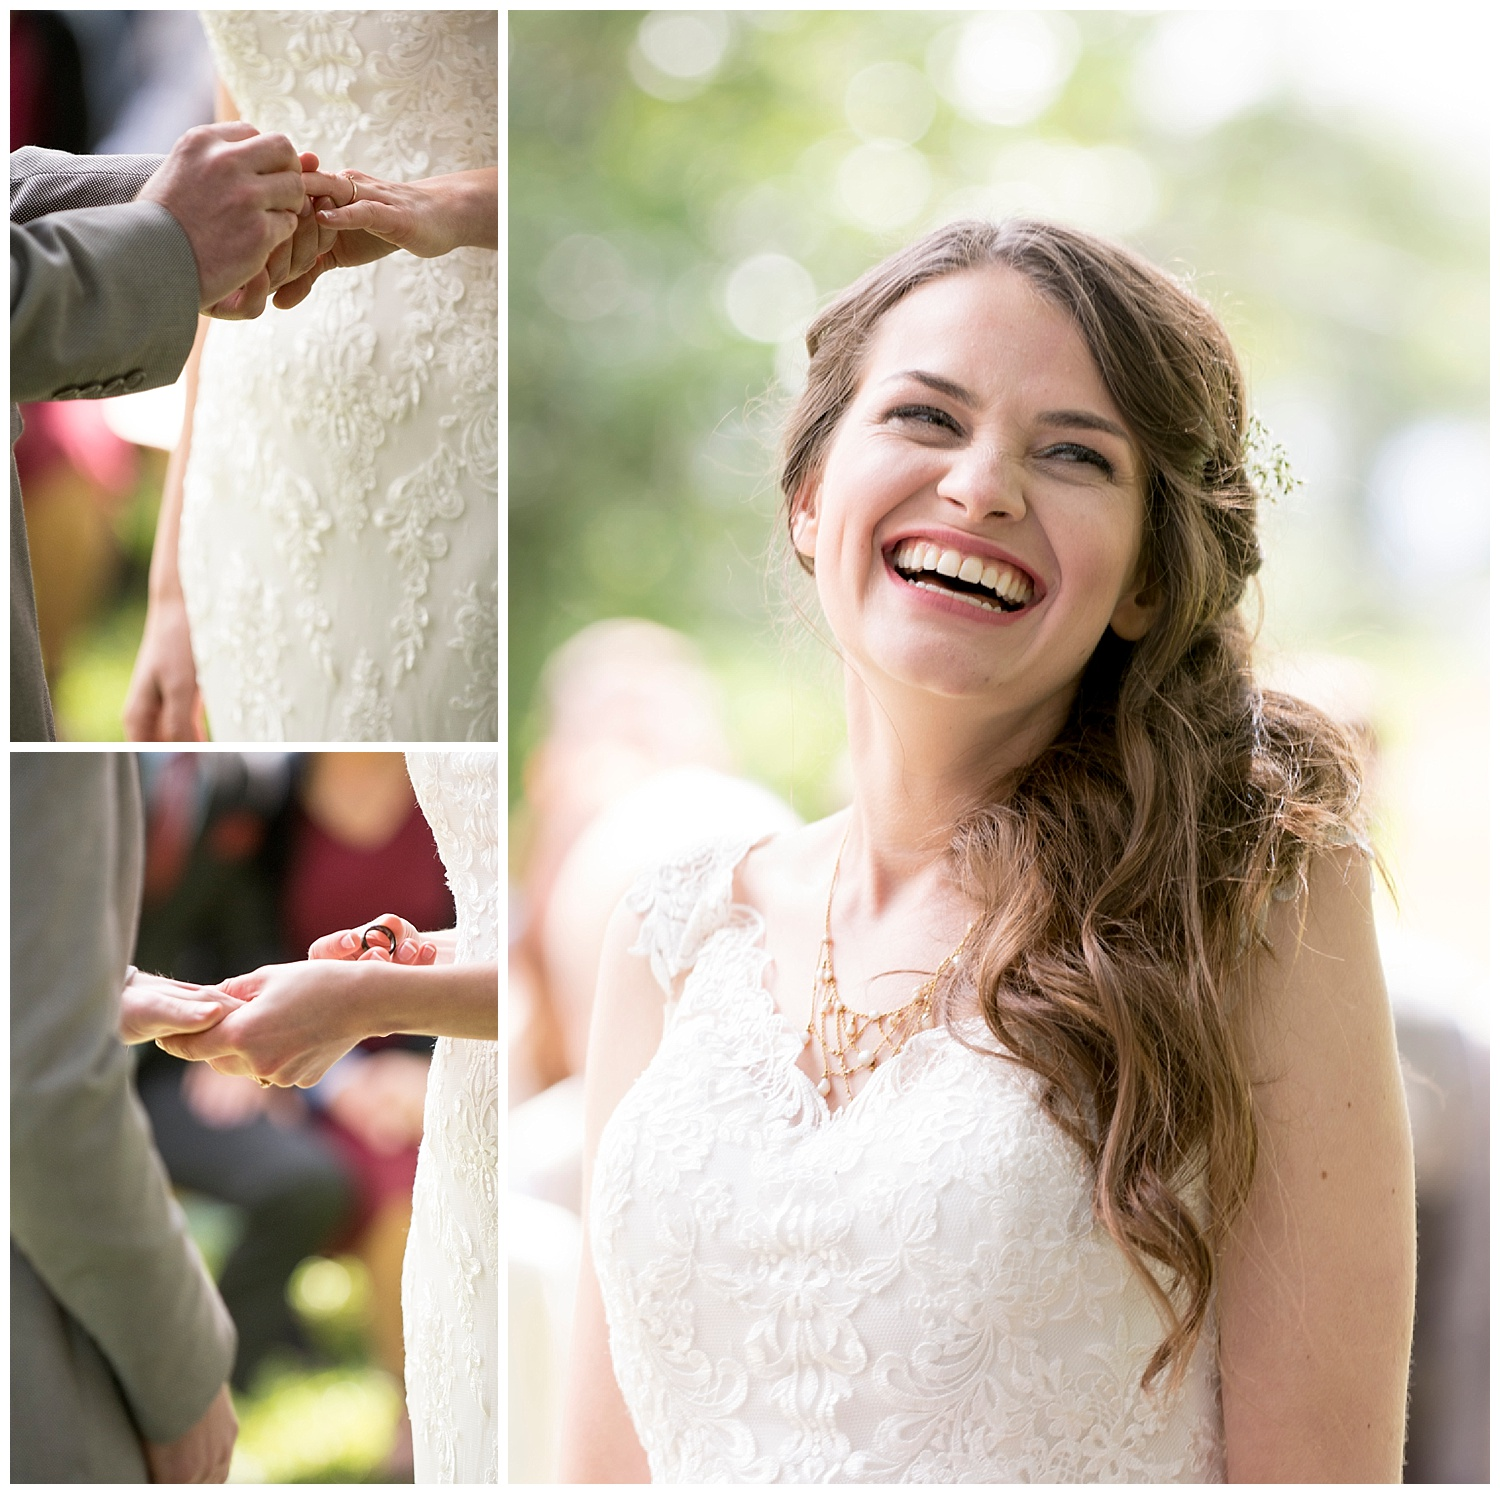 Beautiful Bride Smiling | Bethany and Jono's Intimate DIY Wedding | Colorado Springs Wedding Photographer | Farm Wedding Photographer | Apollo Fields Wedding Photojournalism